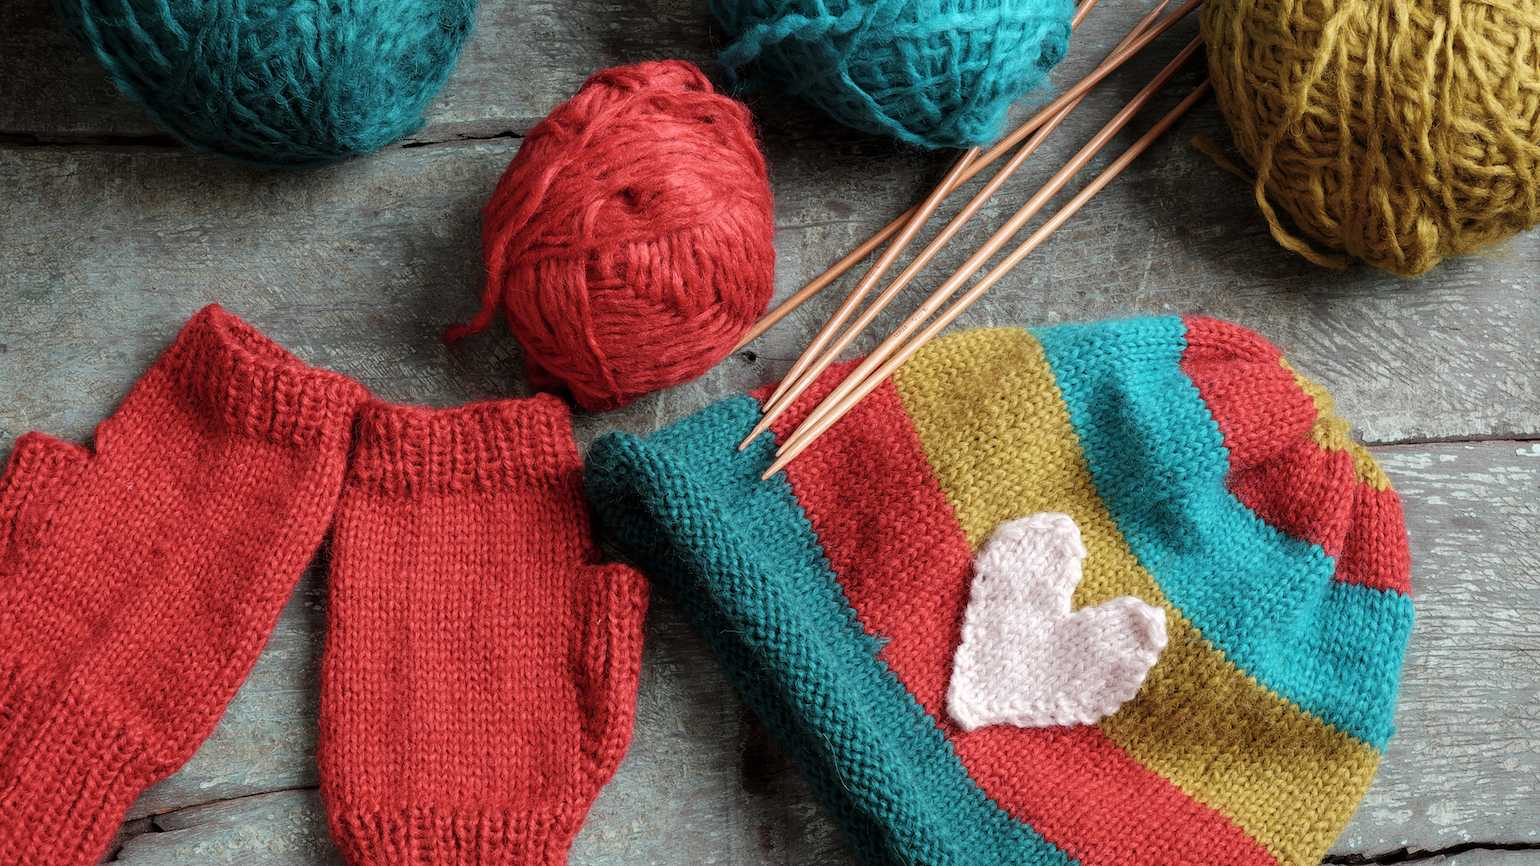 Knitting as love